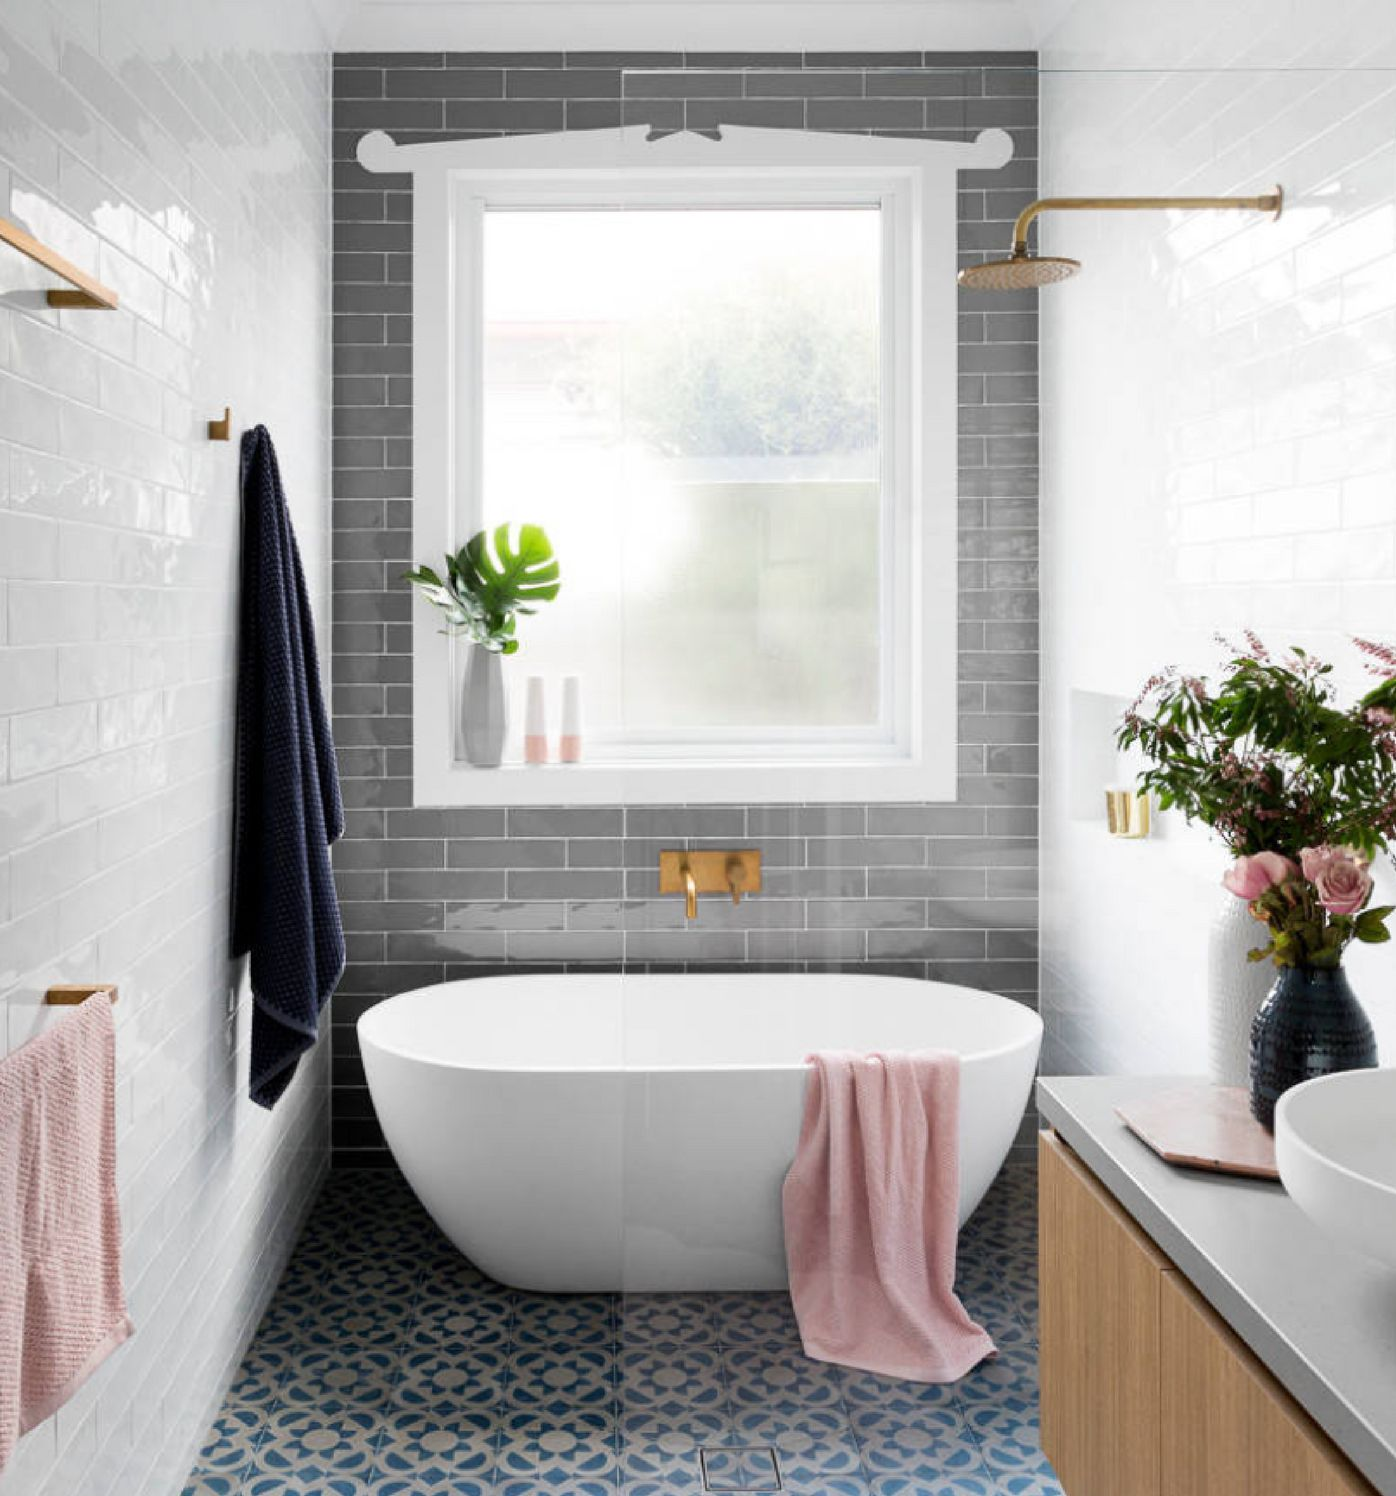 Houzz Marketing For Interior Designers: The Most Popular Designs Australians Want In Their Homes